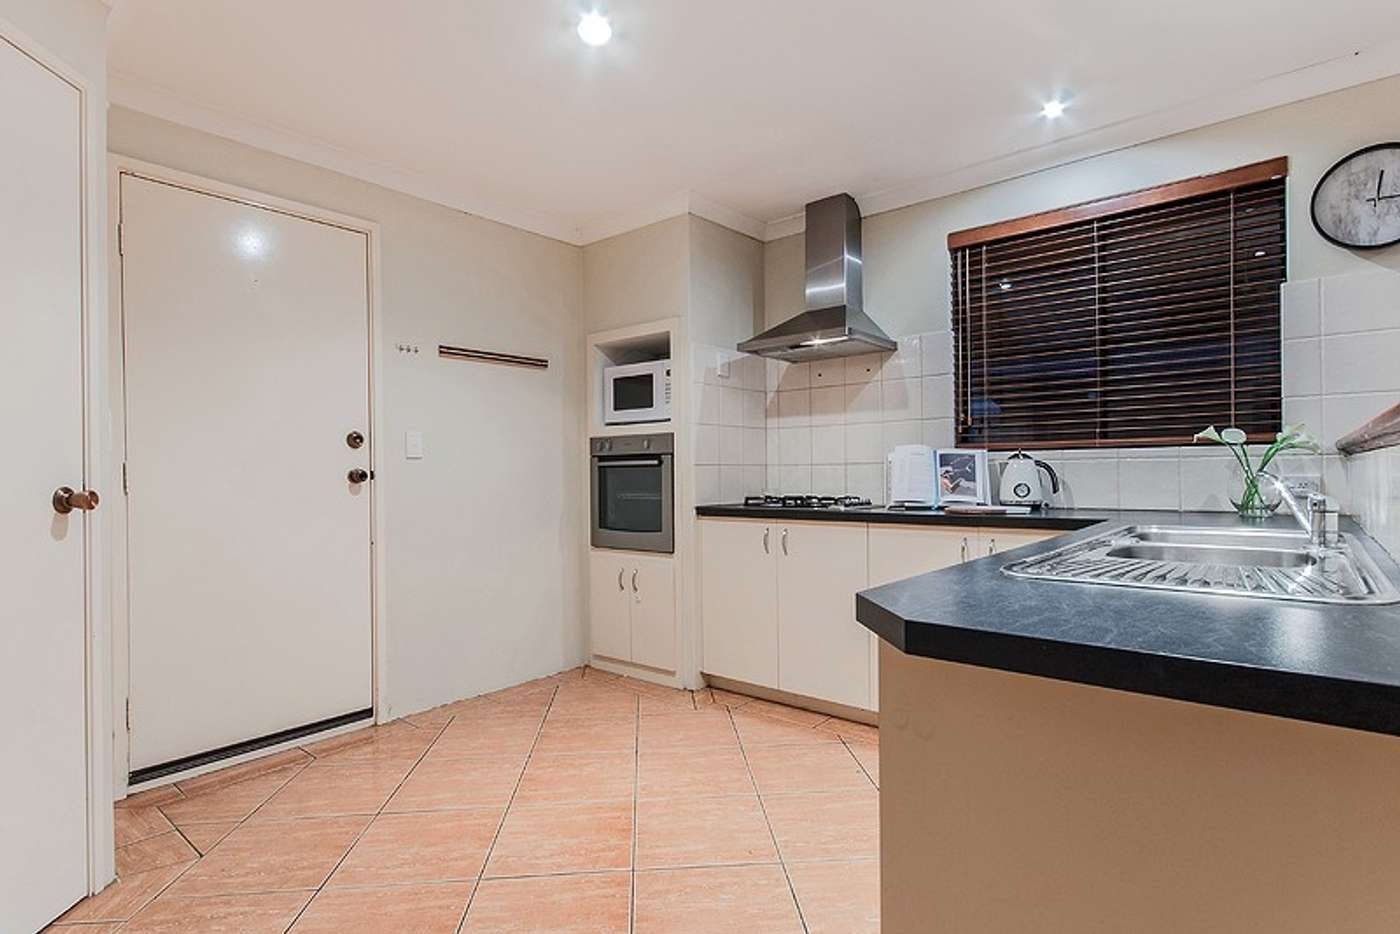 Sixth view of Homely house listing, 16 Murphy Crescent, Bertram WA 6167